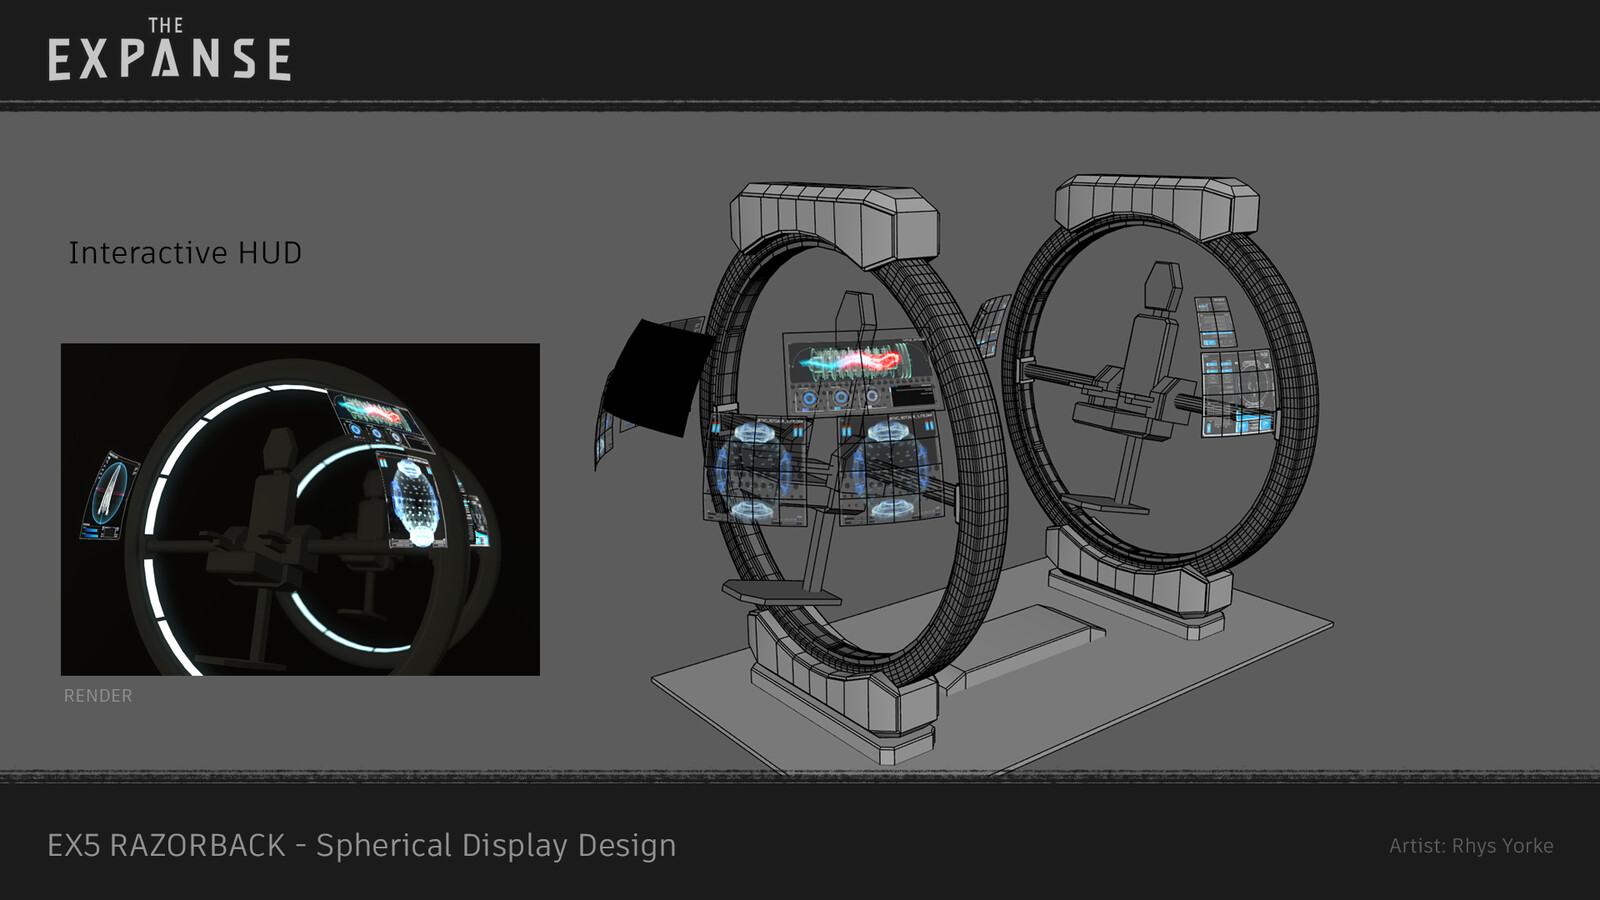 Basic layout of the HUD and screens